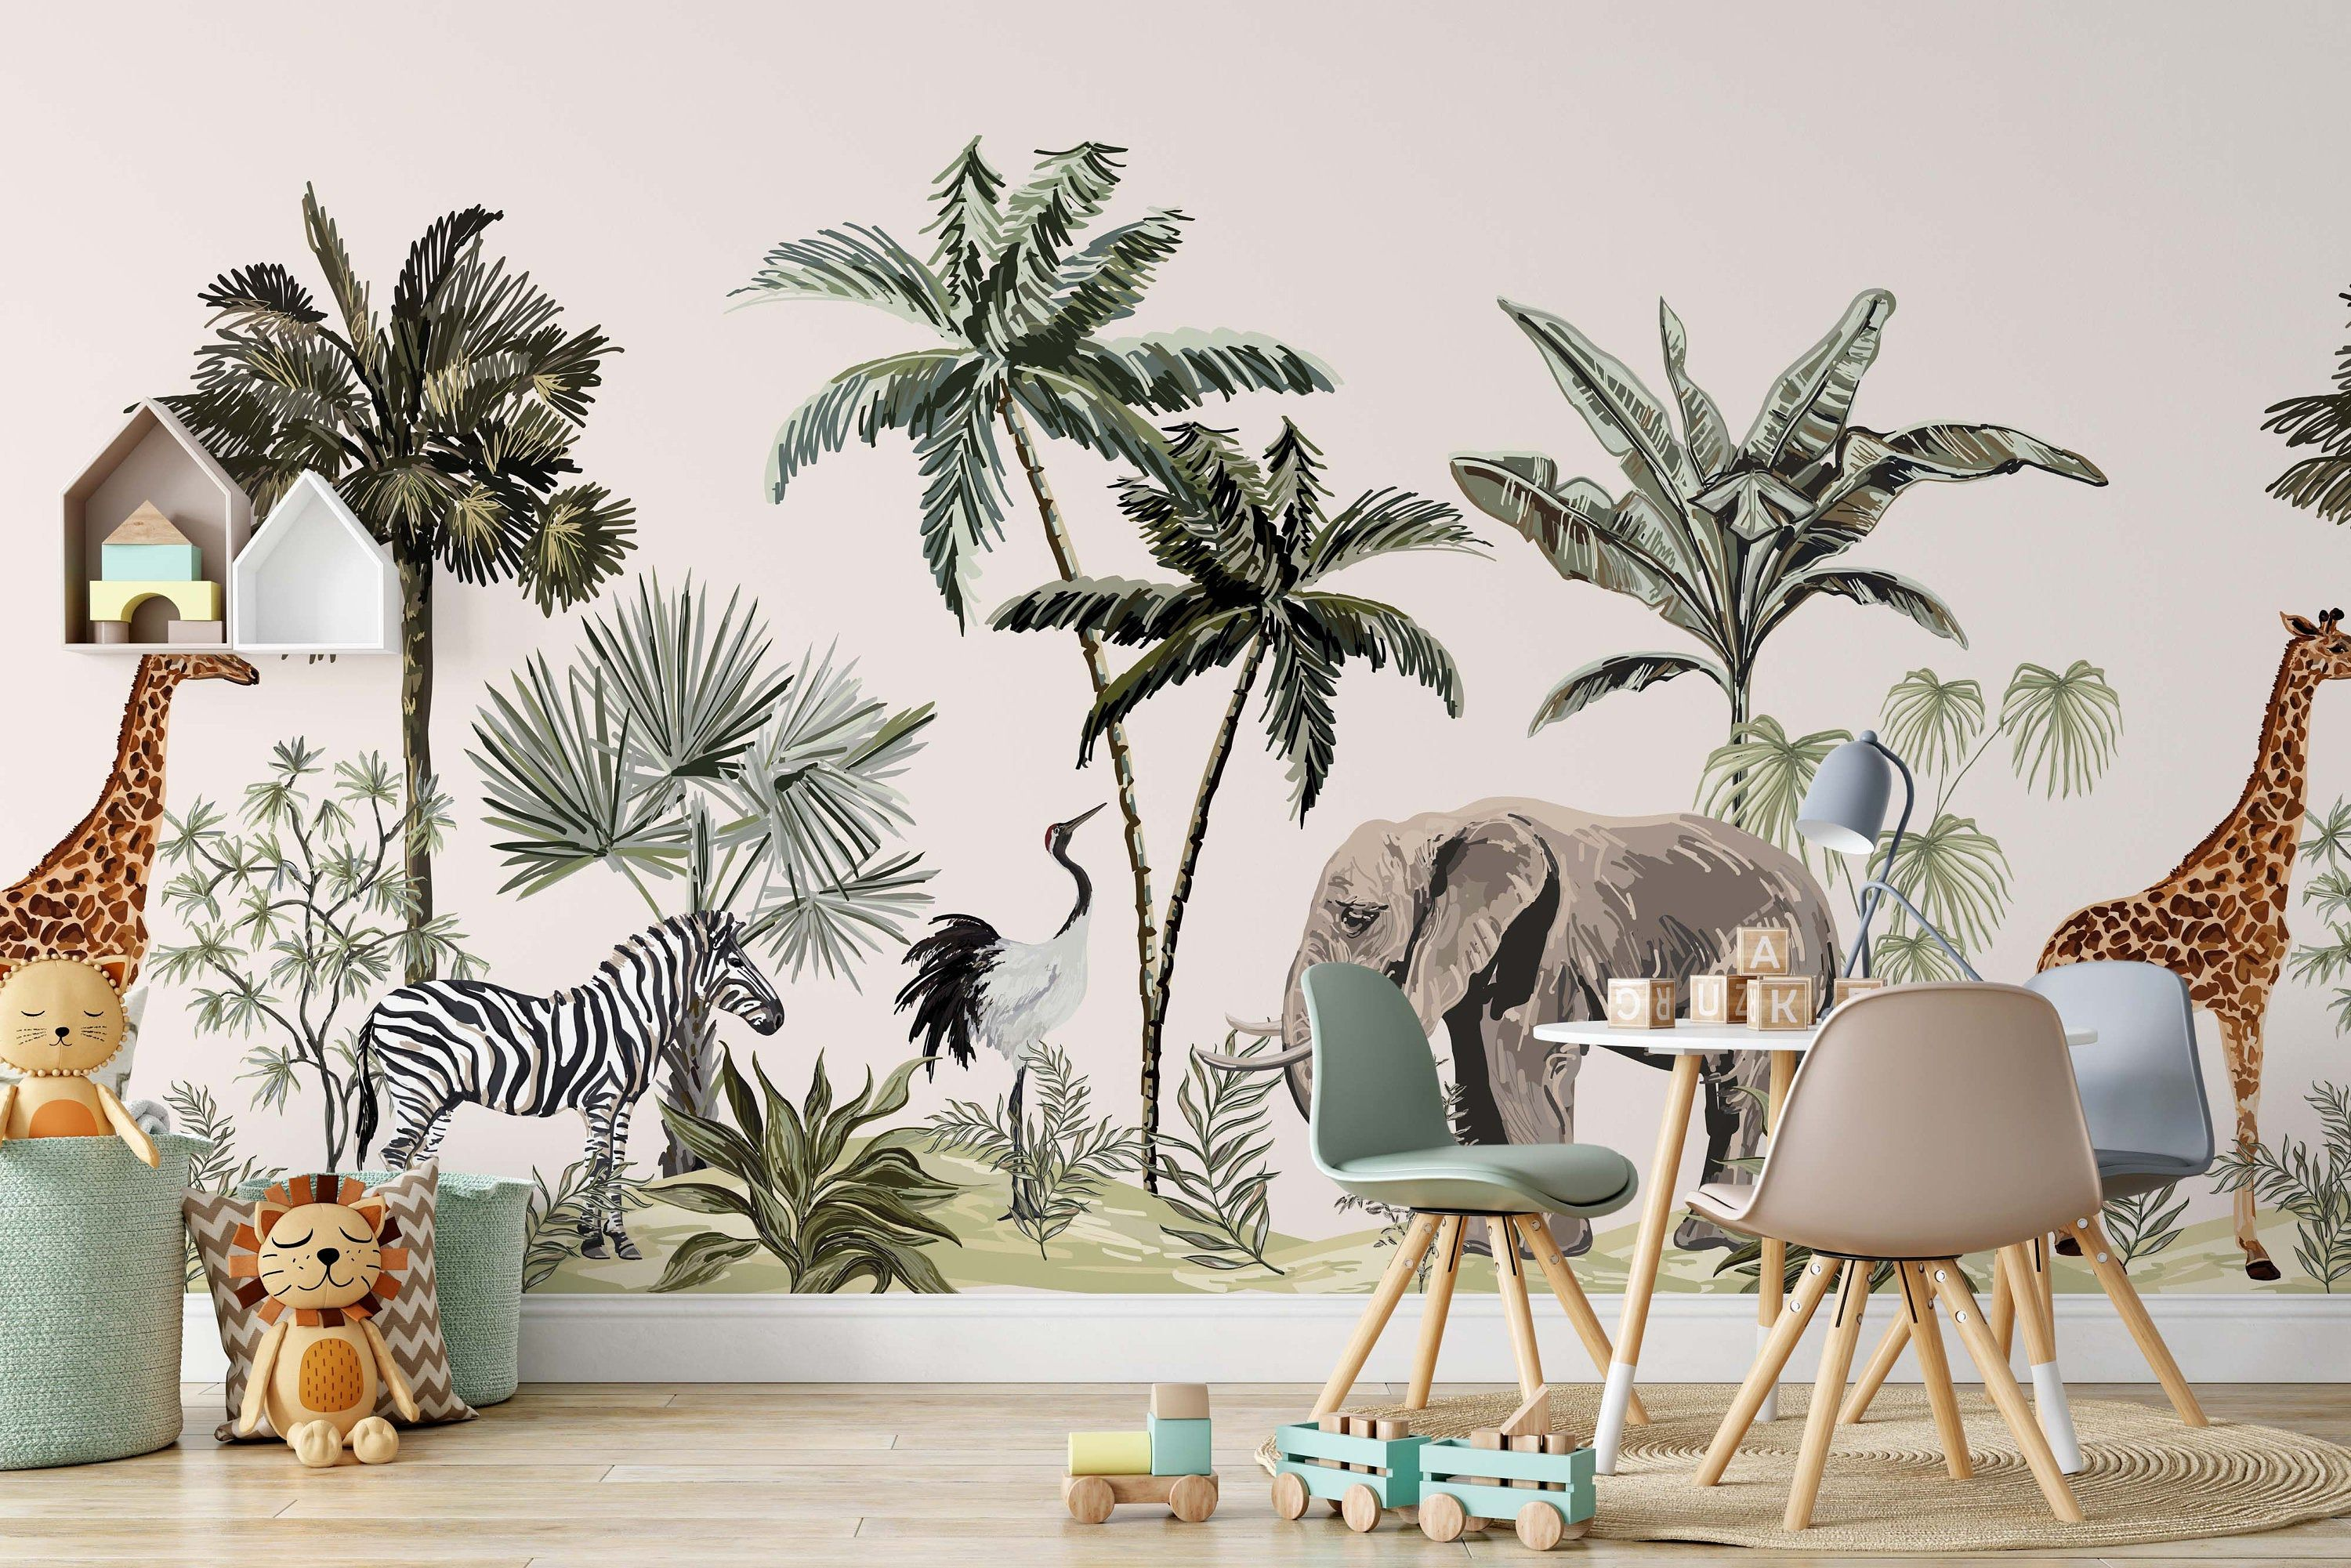 Tropical Jungle Botanical Plants Leaves African Animals Palm Etsy Trees Wallpaper Bedroom Palm Trees Wallpaper Kids Room Murals